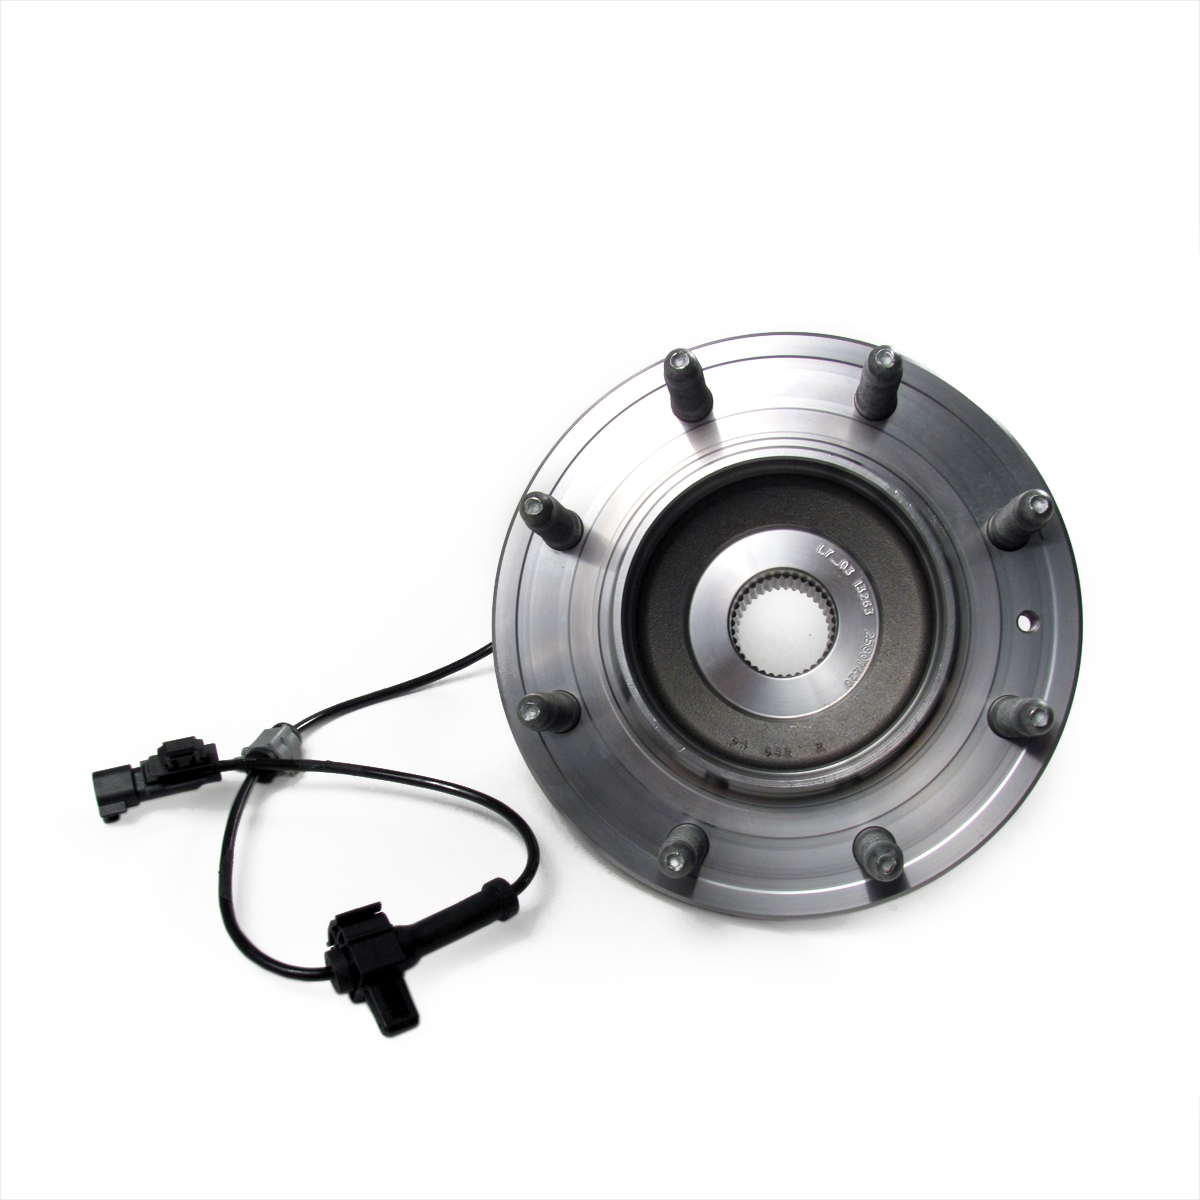 medium resolution of front wheel hub bearing assembly with speed sensor and wiring gm part nos 23203922 25807420 fw386